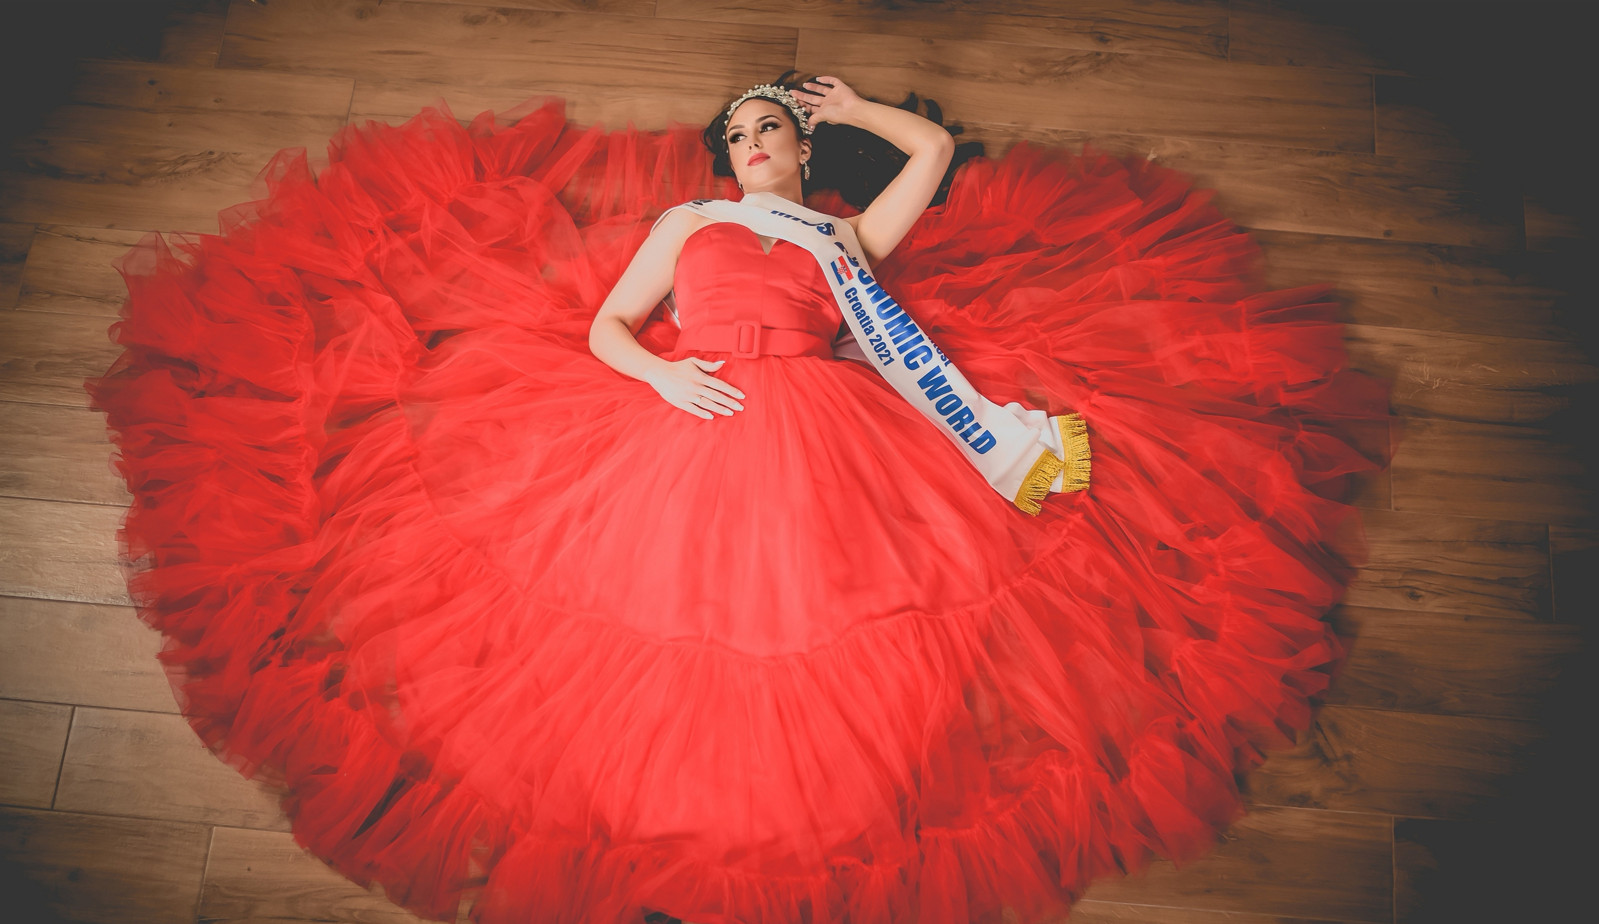 Nikolina milak from croatia won our hearts with her beauty and talent (3)